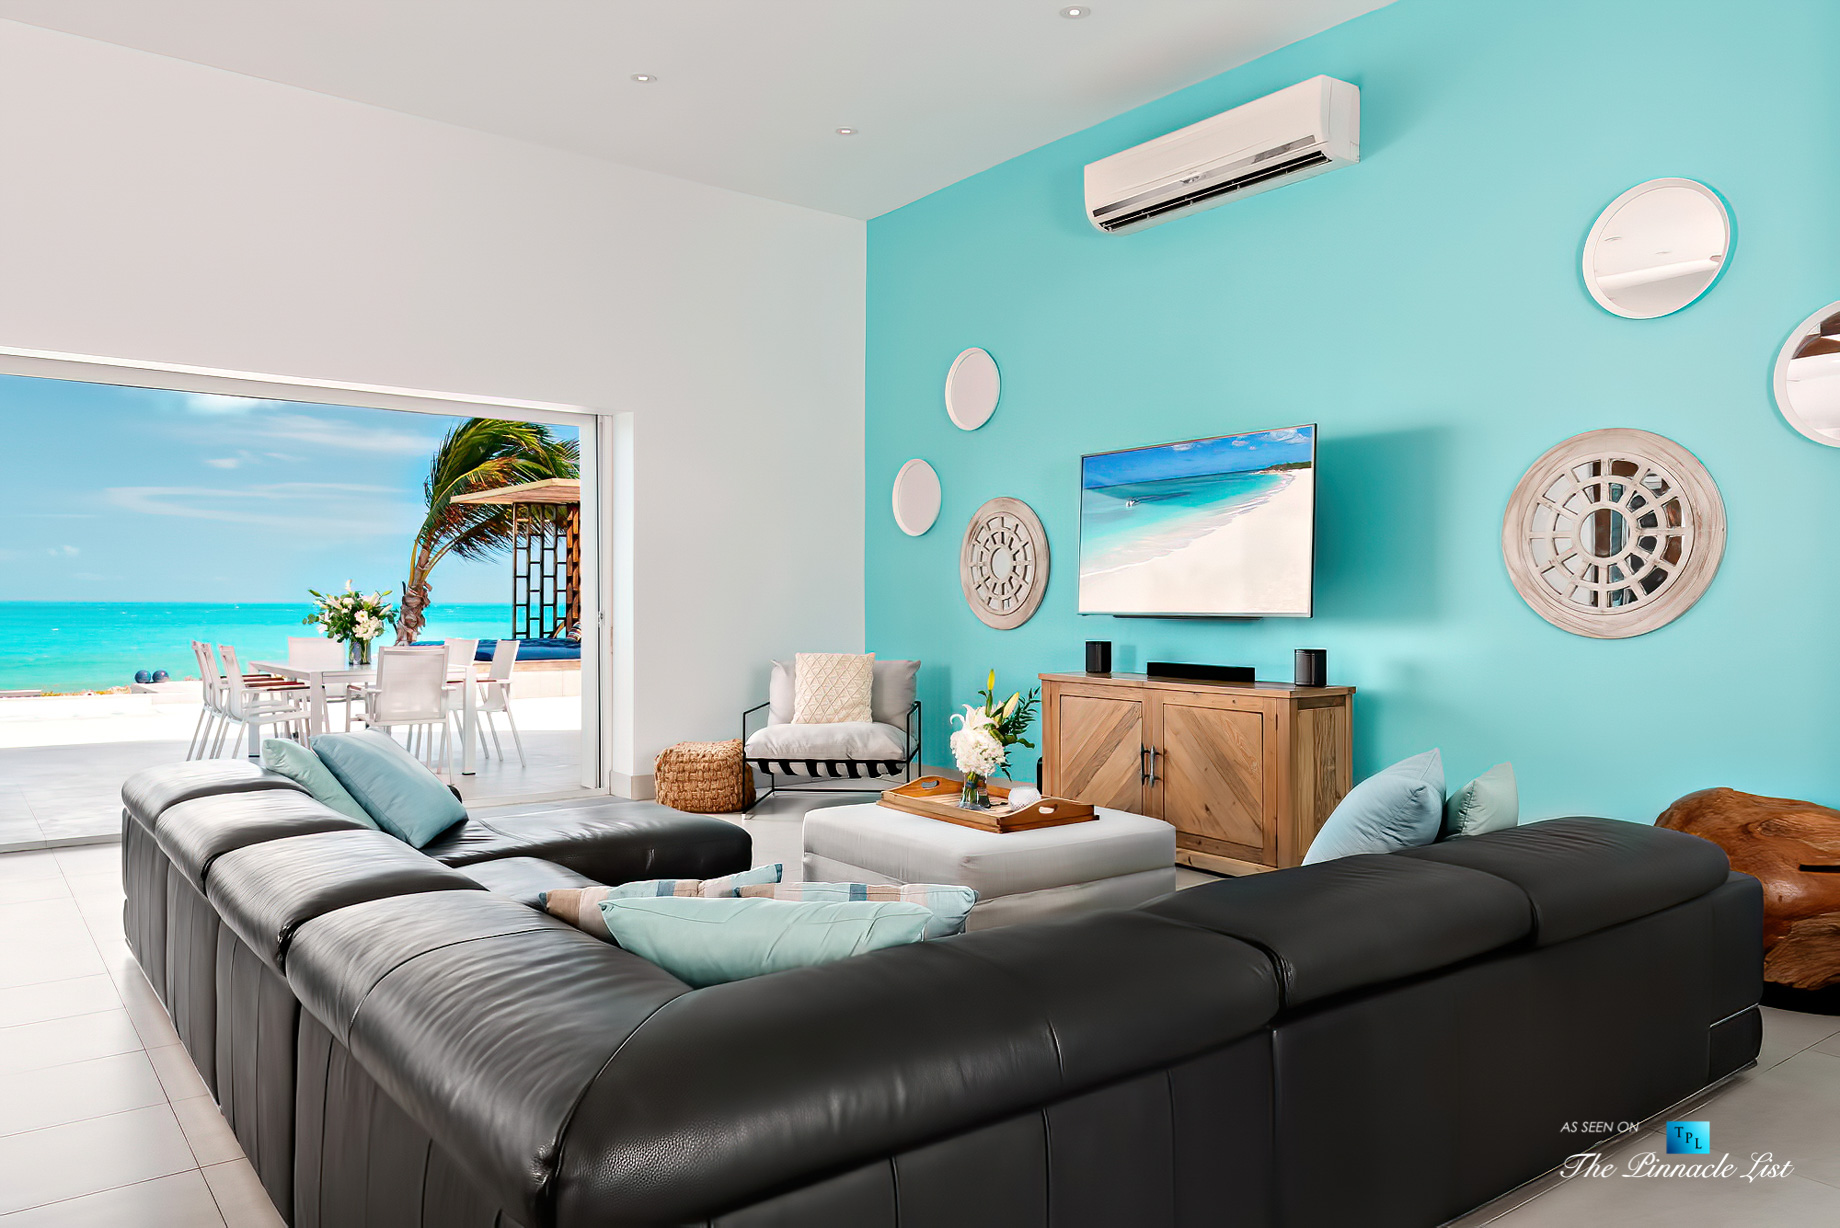 Tip of the Tail Luxury Villa – Providenciales, Turks and Caicos Islands – Living Room Ocean View